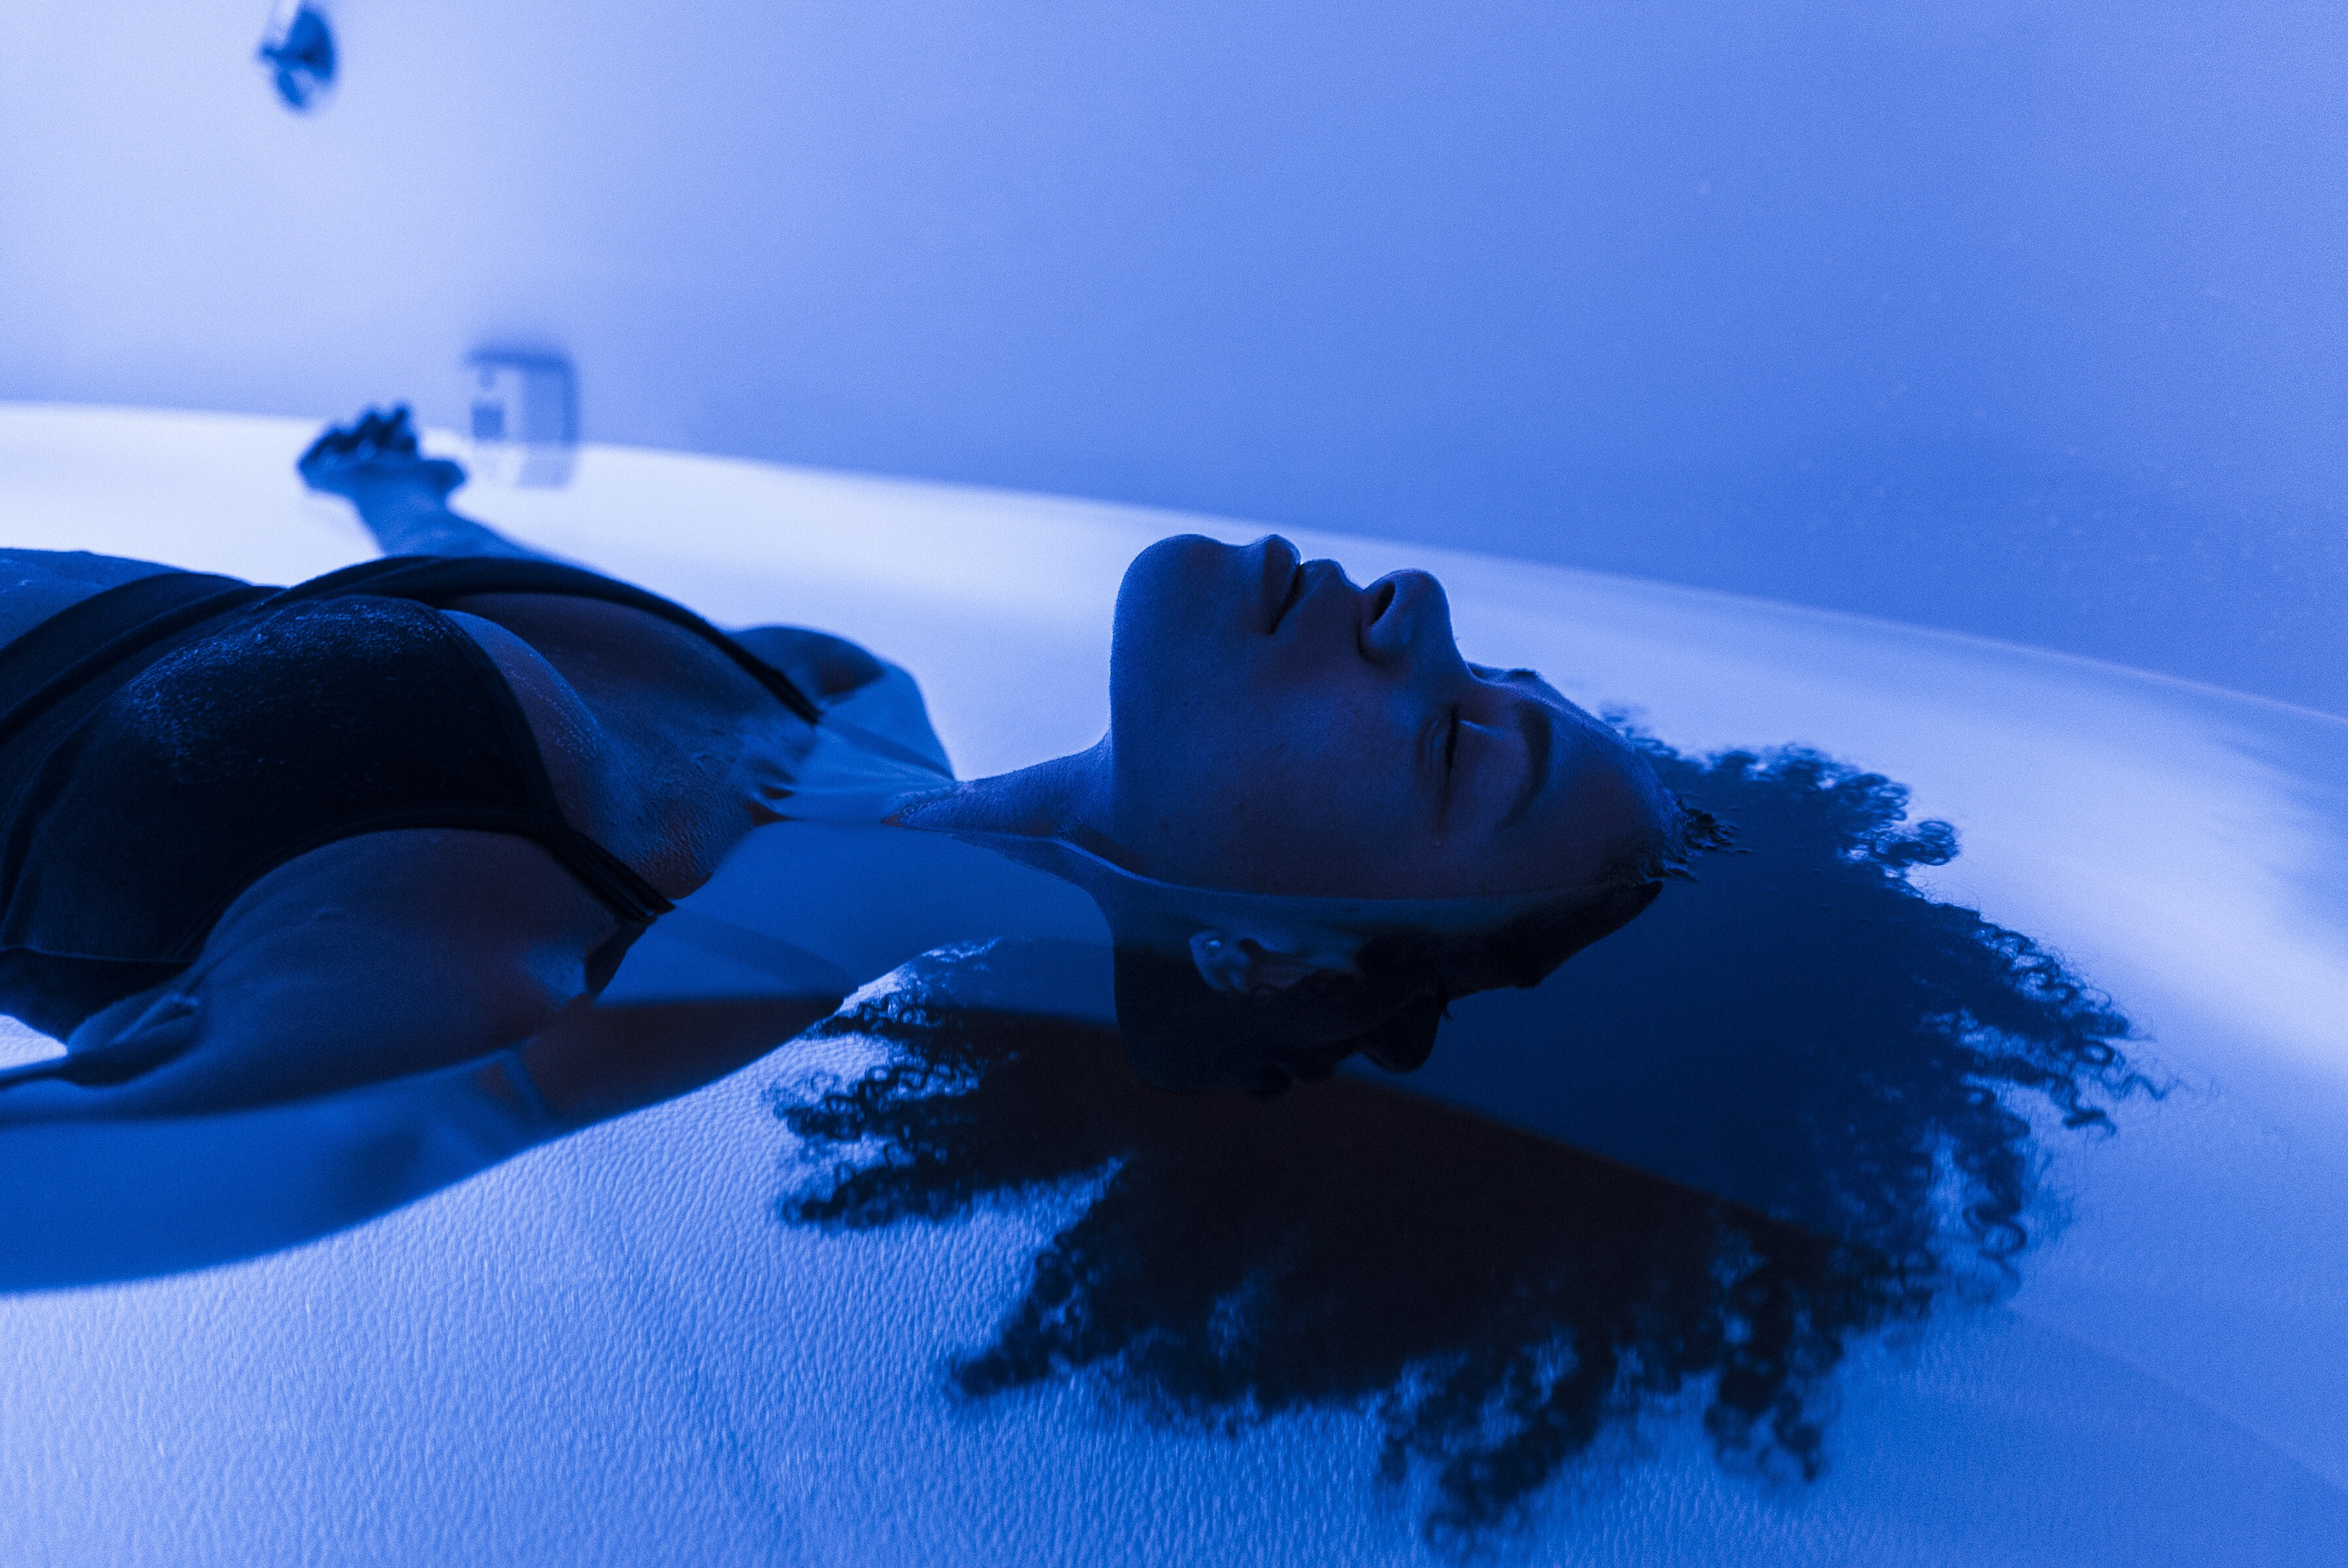 sensory deprivation tank, aarp, the girlfriend, massage, therapy, relaxation